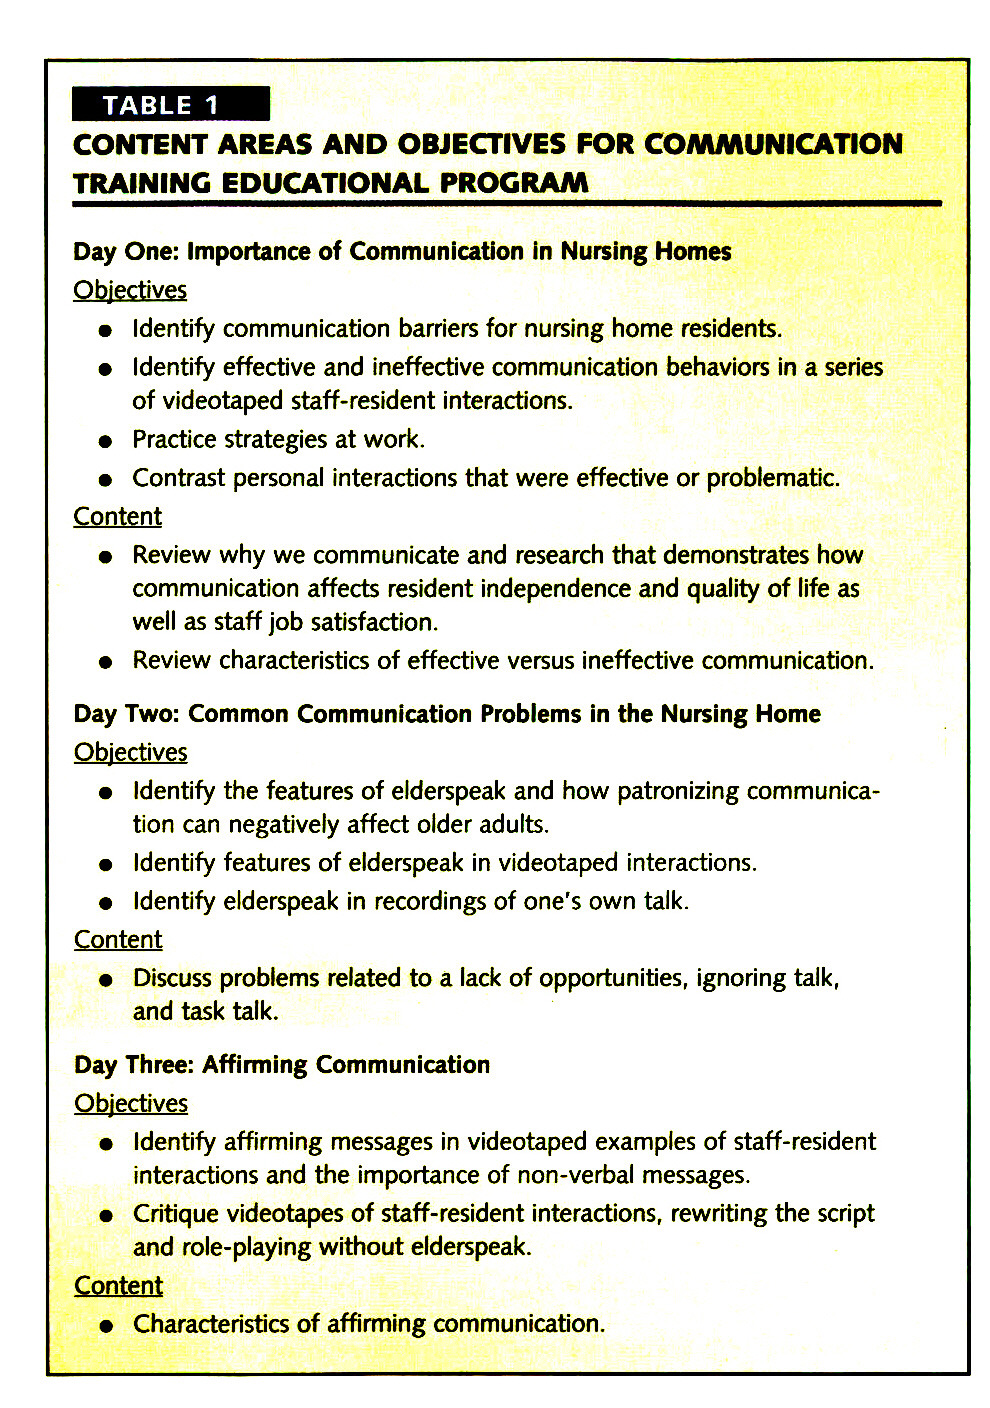 TABLE 1CONTENT AREAS AND OBJECTIVES FOR COMMUNICATION TRAINING EDUCATIONAL PROGRAM